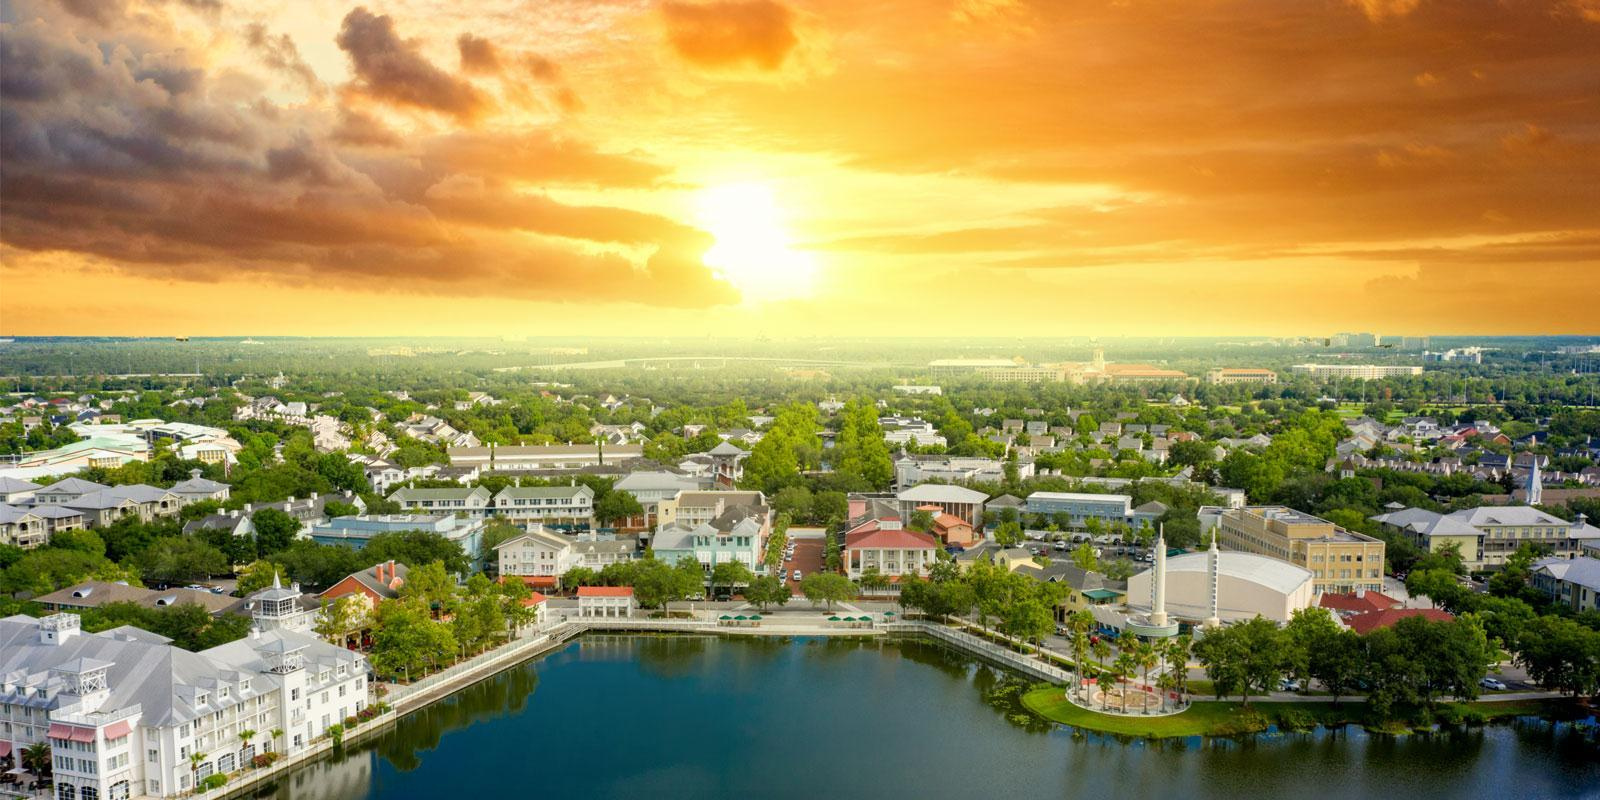 Island Village at Celebration:Celebration Florida Mattamy Homes Island Village Sunset